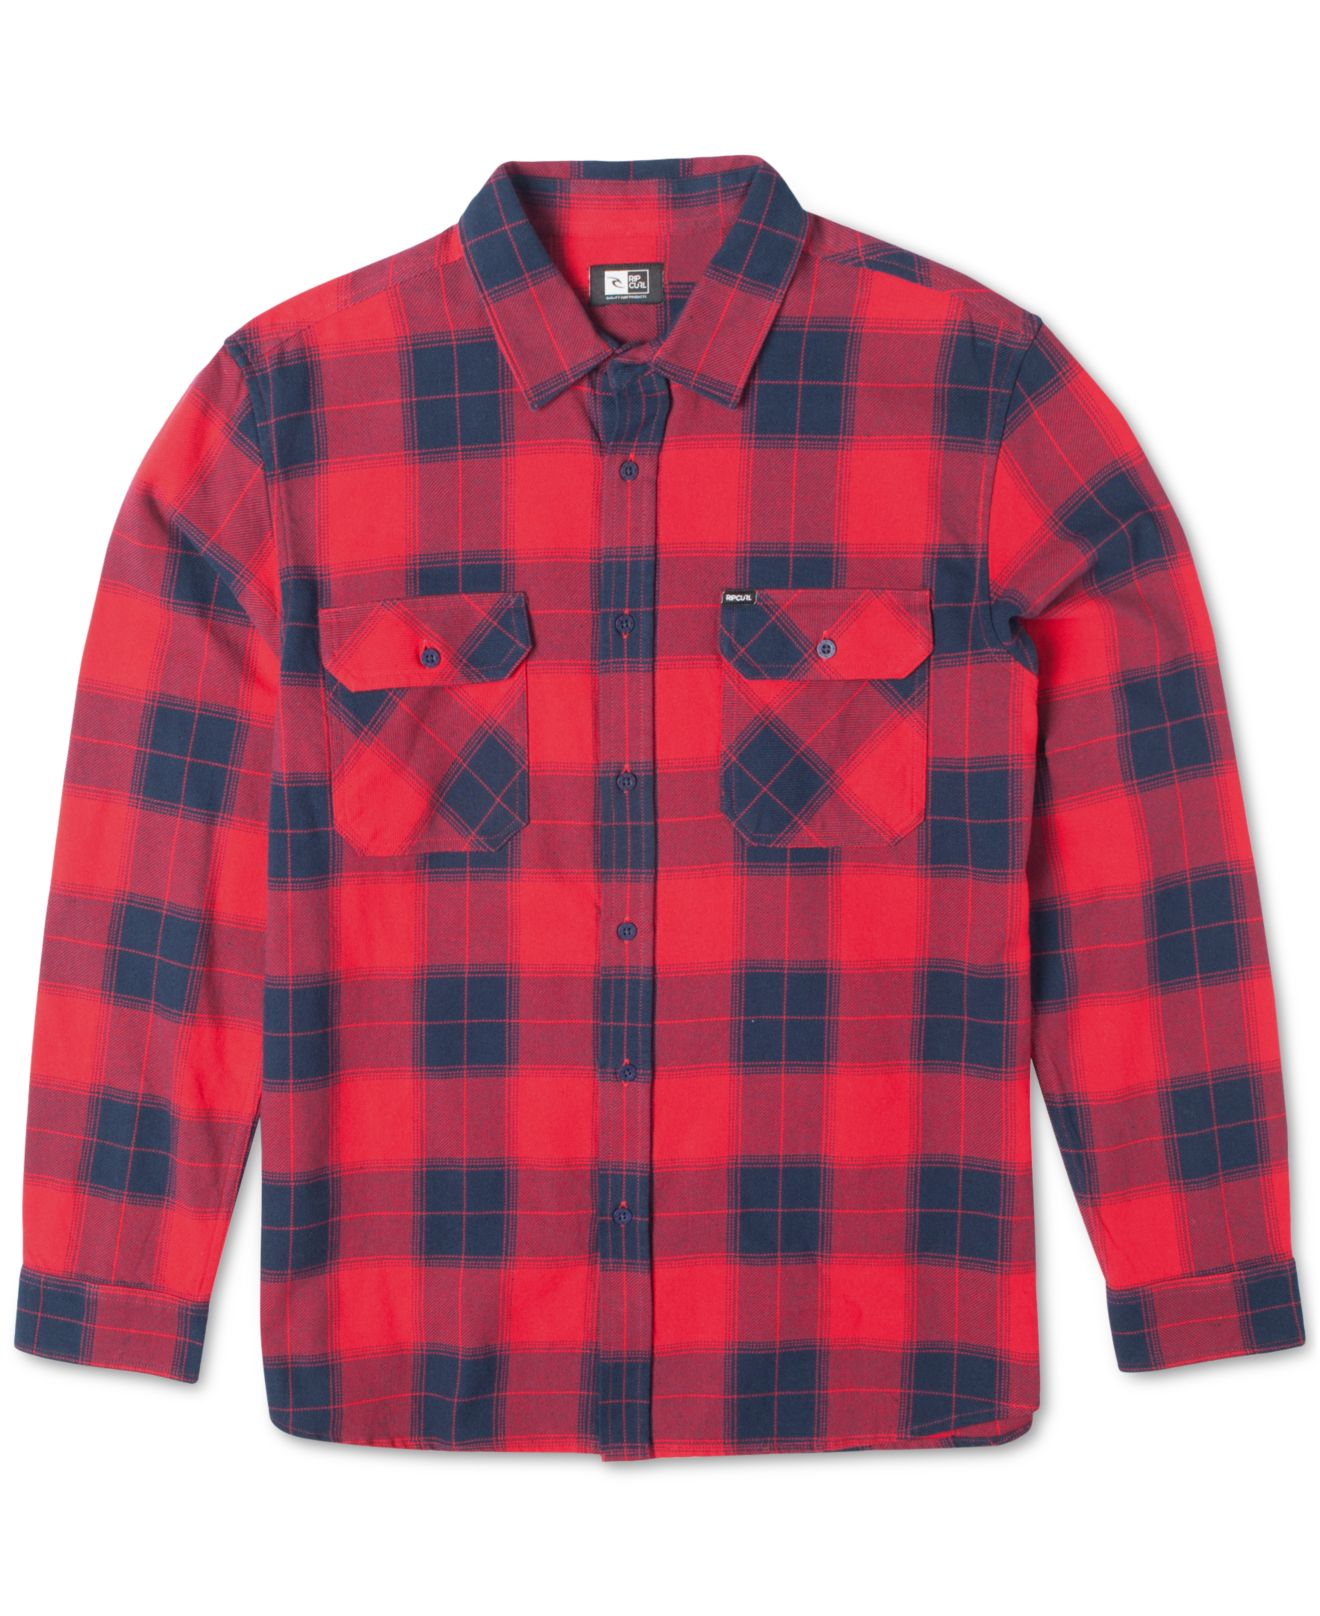 Rip Curl Ruggles Plaid Flannel Long Sleeve Shirt In Red